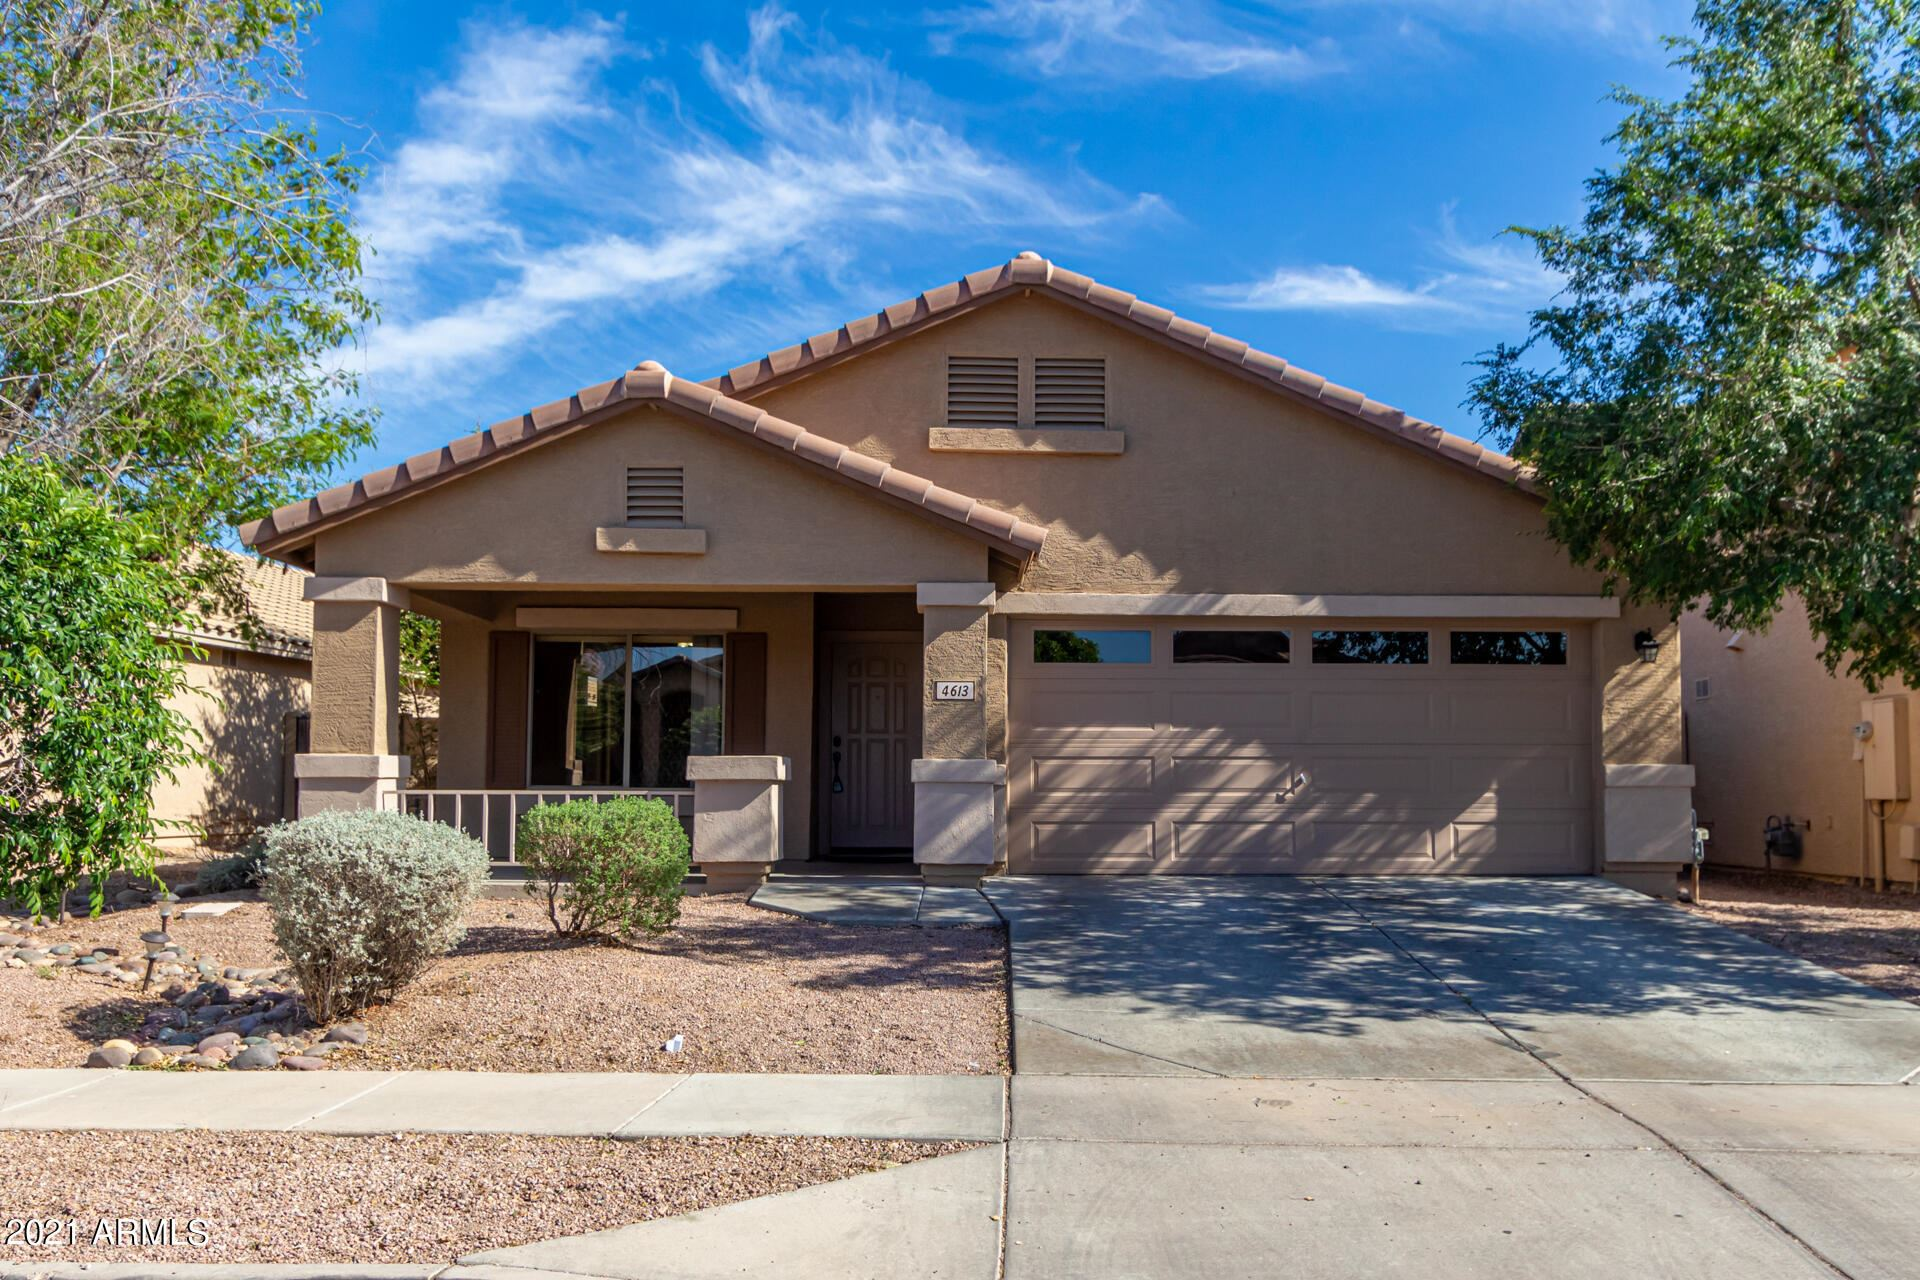 Photo of 4613 W BEVERLY Road, Laveen, AZ 85339 (MLS # 6219412)